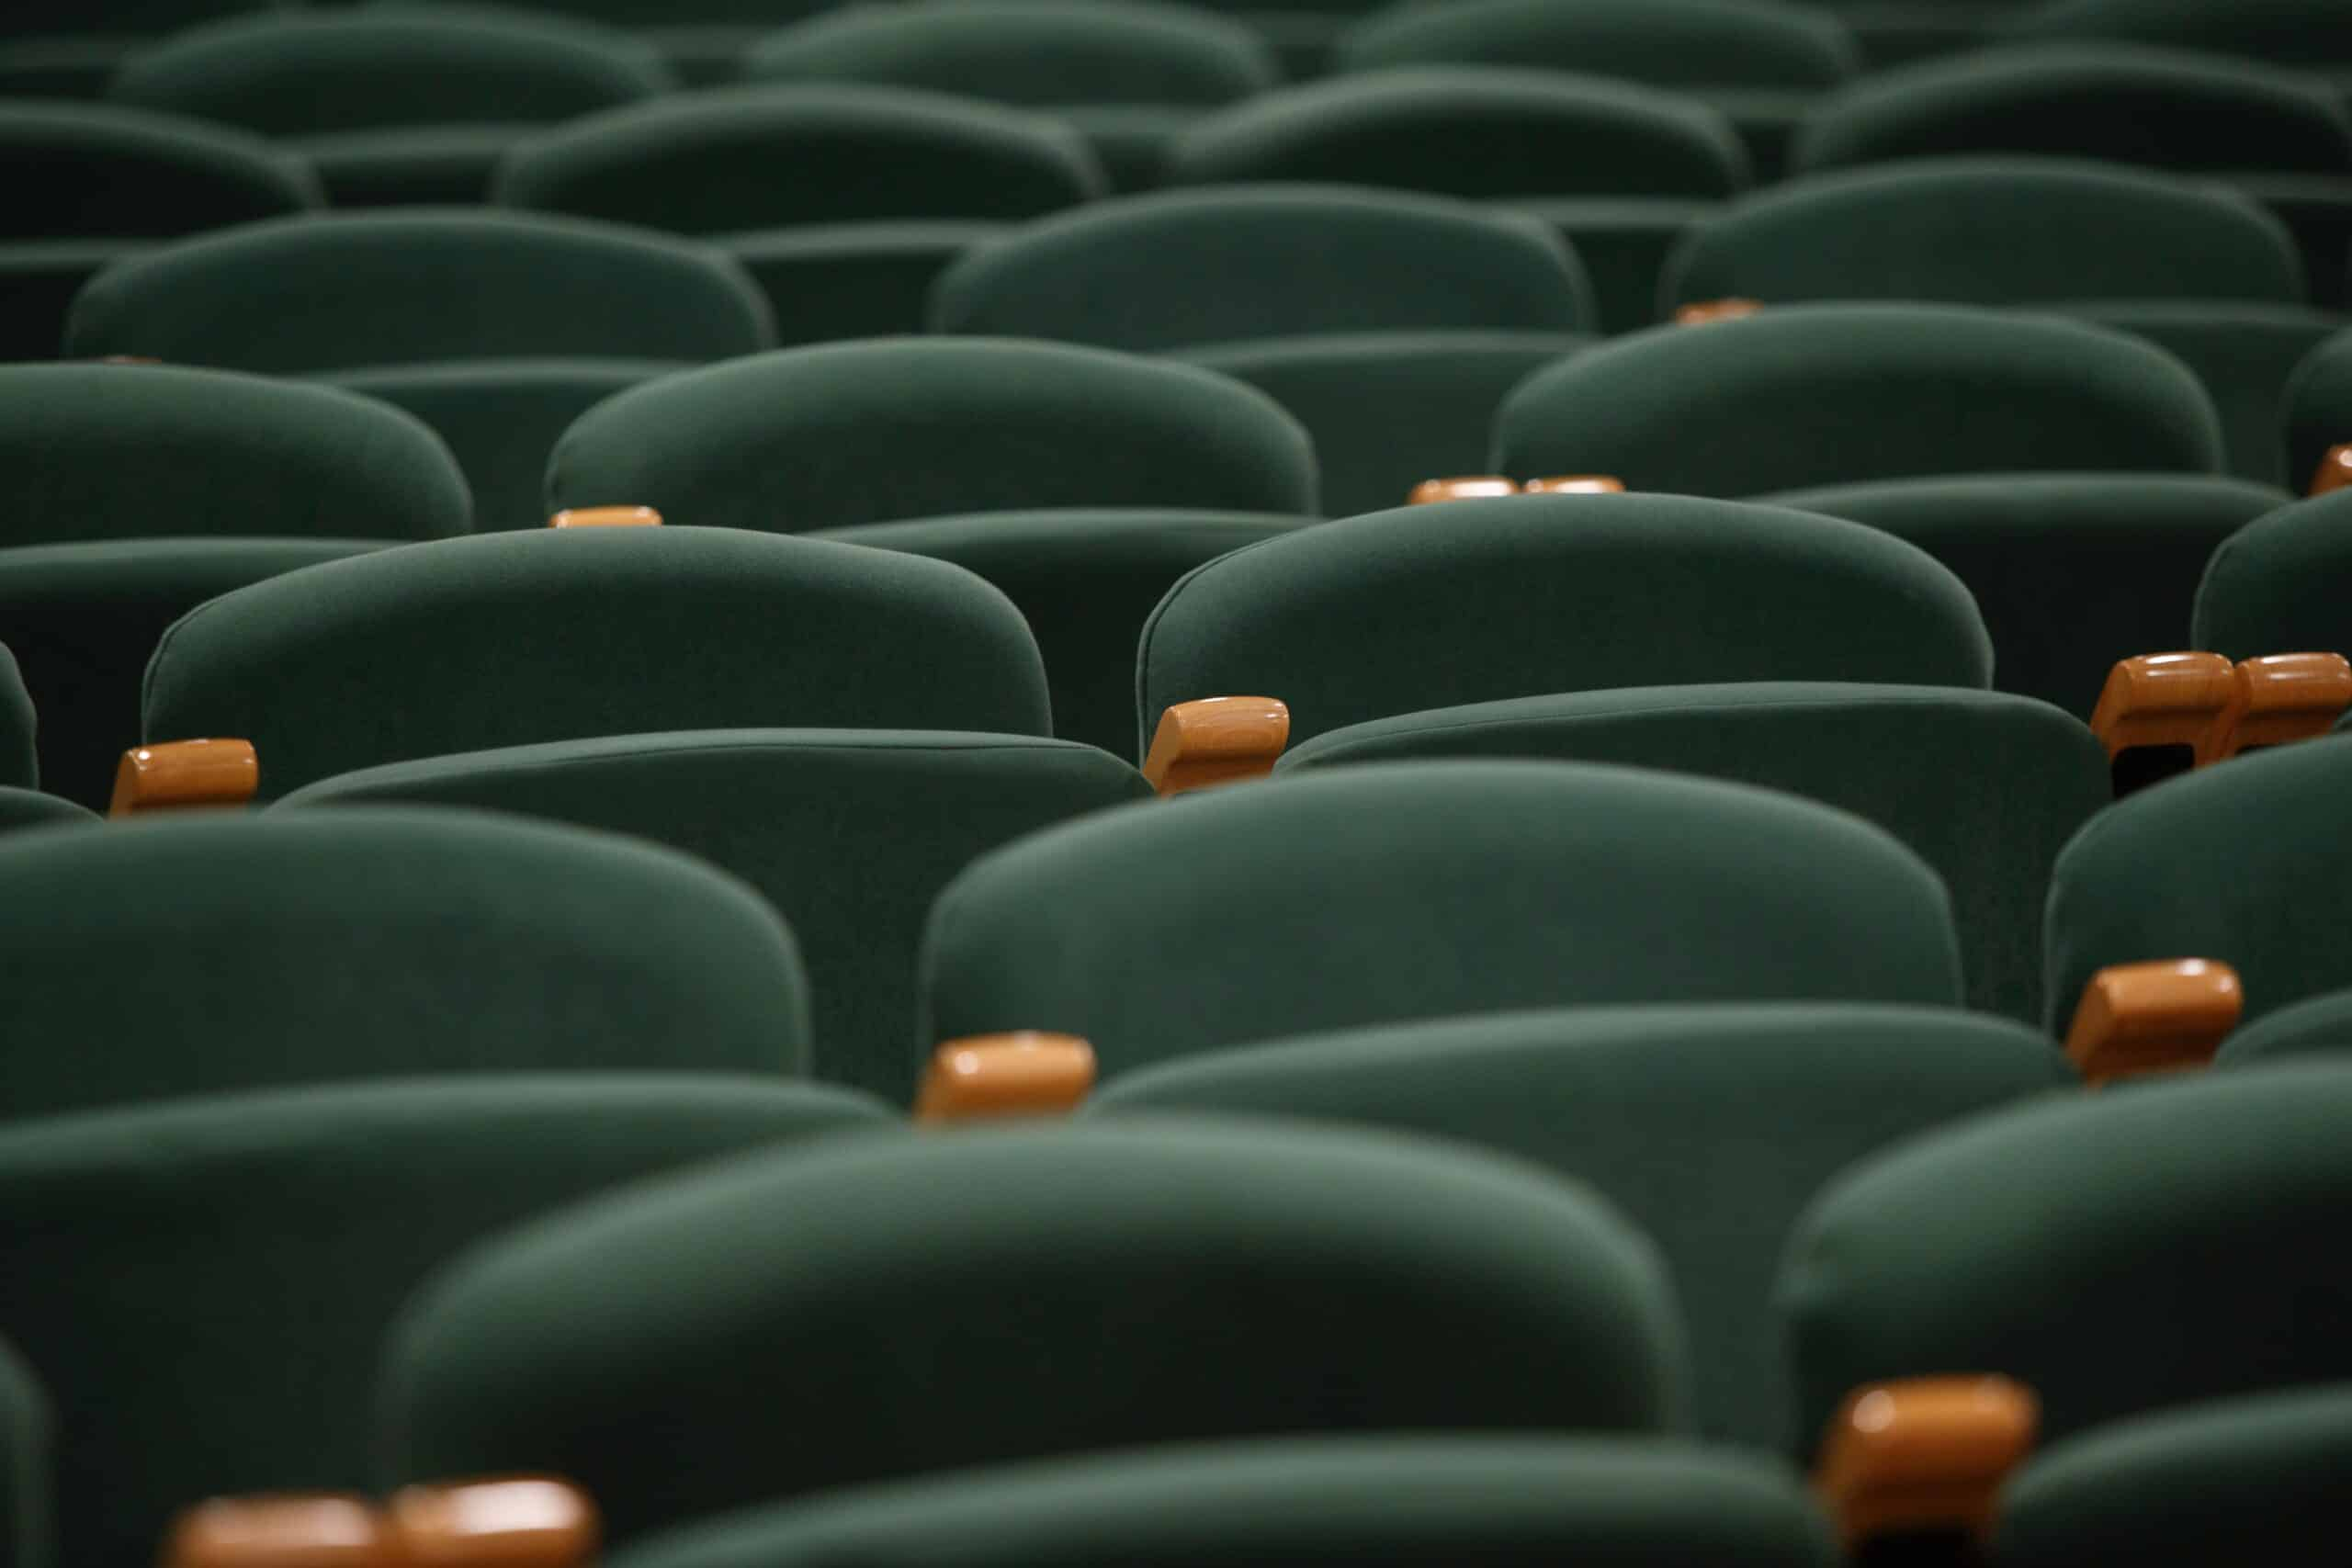 Green theater chairs in an auditorium